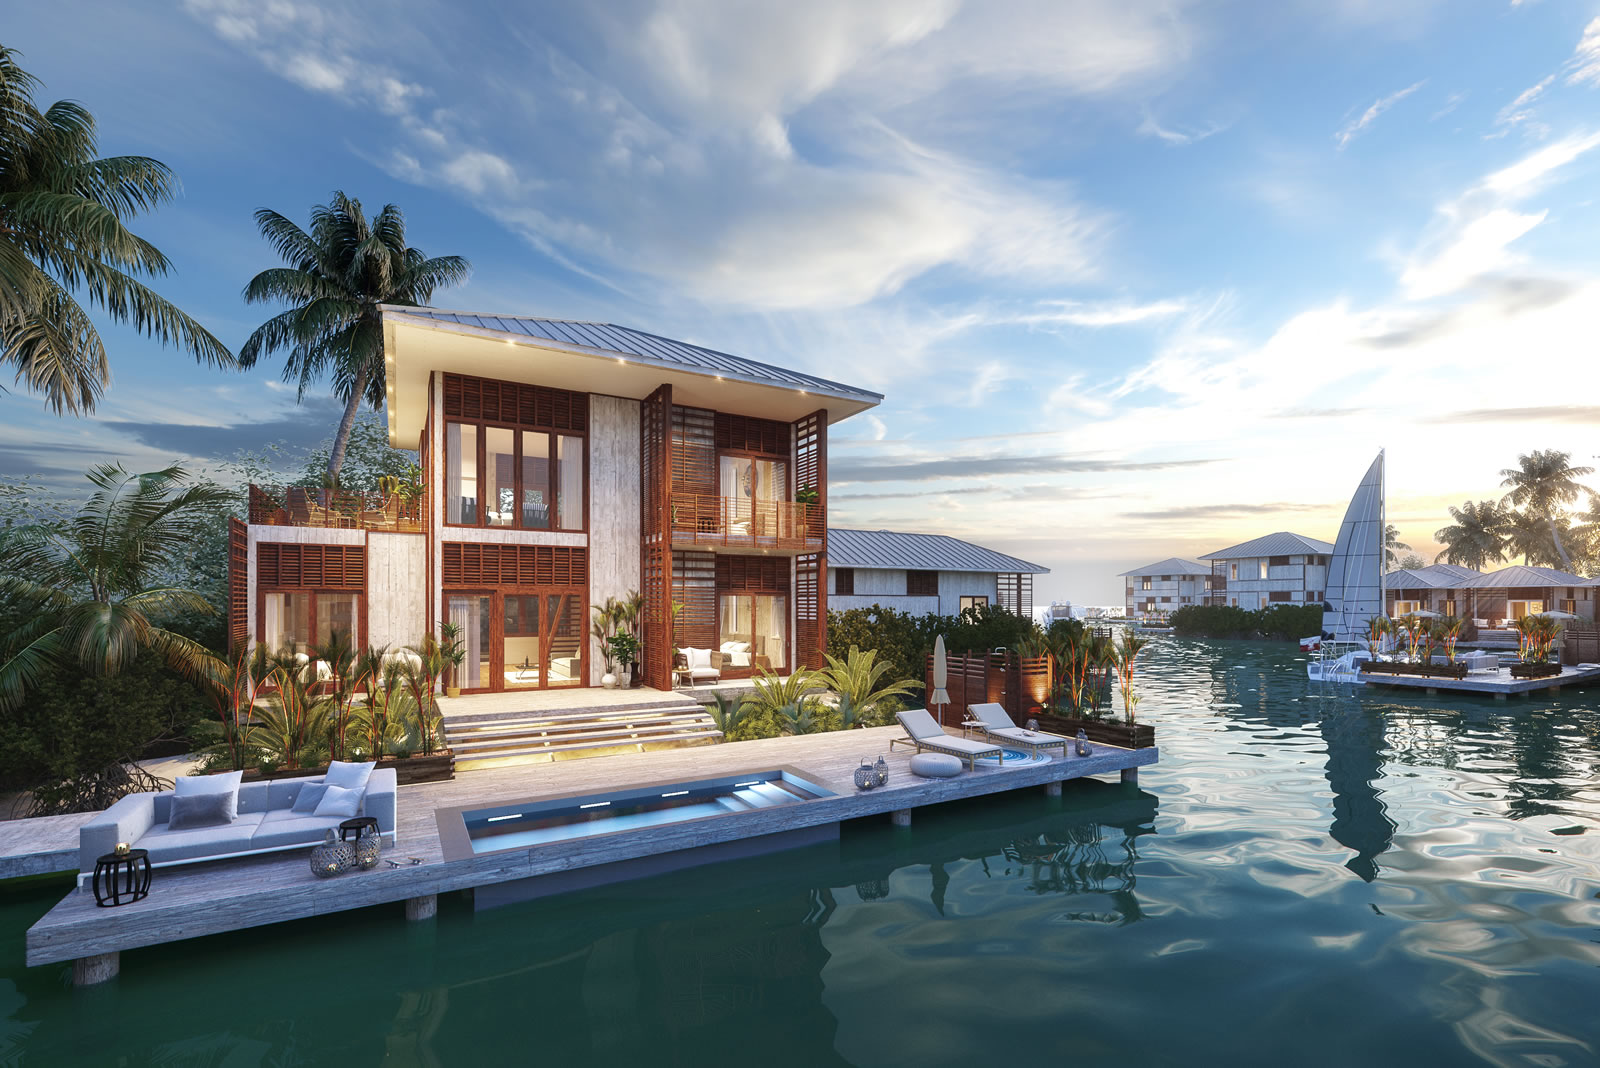 3 Bedroom Luxury Lagoon Homes for Sale, Placencia, Belize - 7th Heaven  Properties